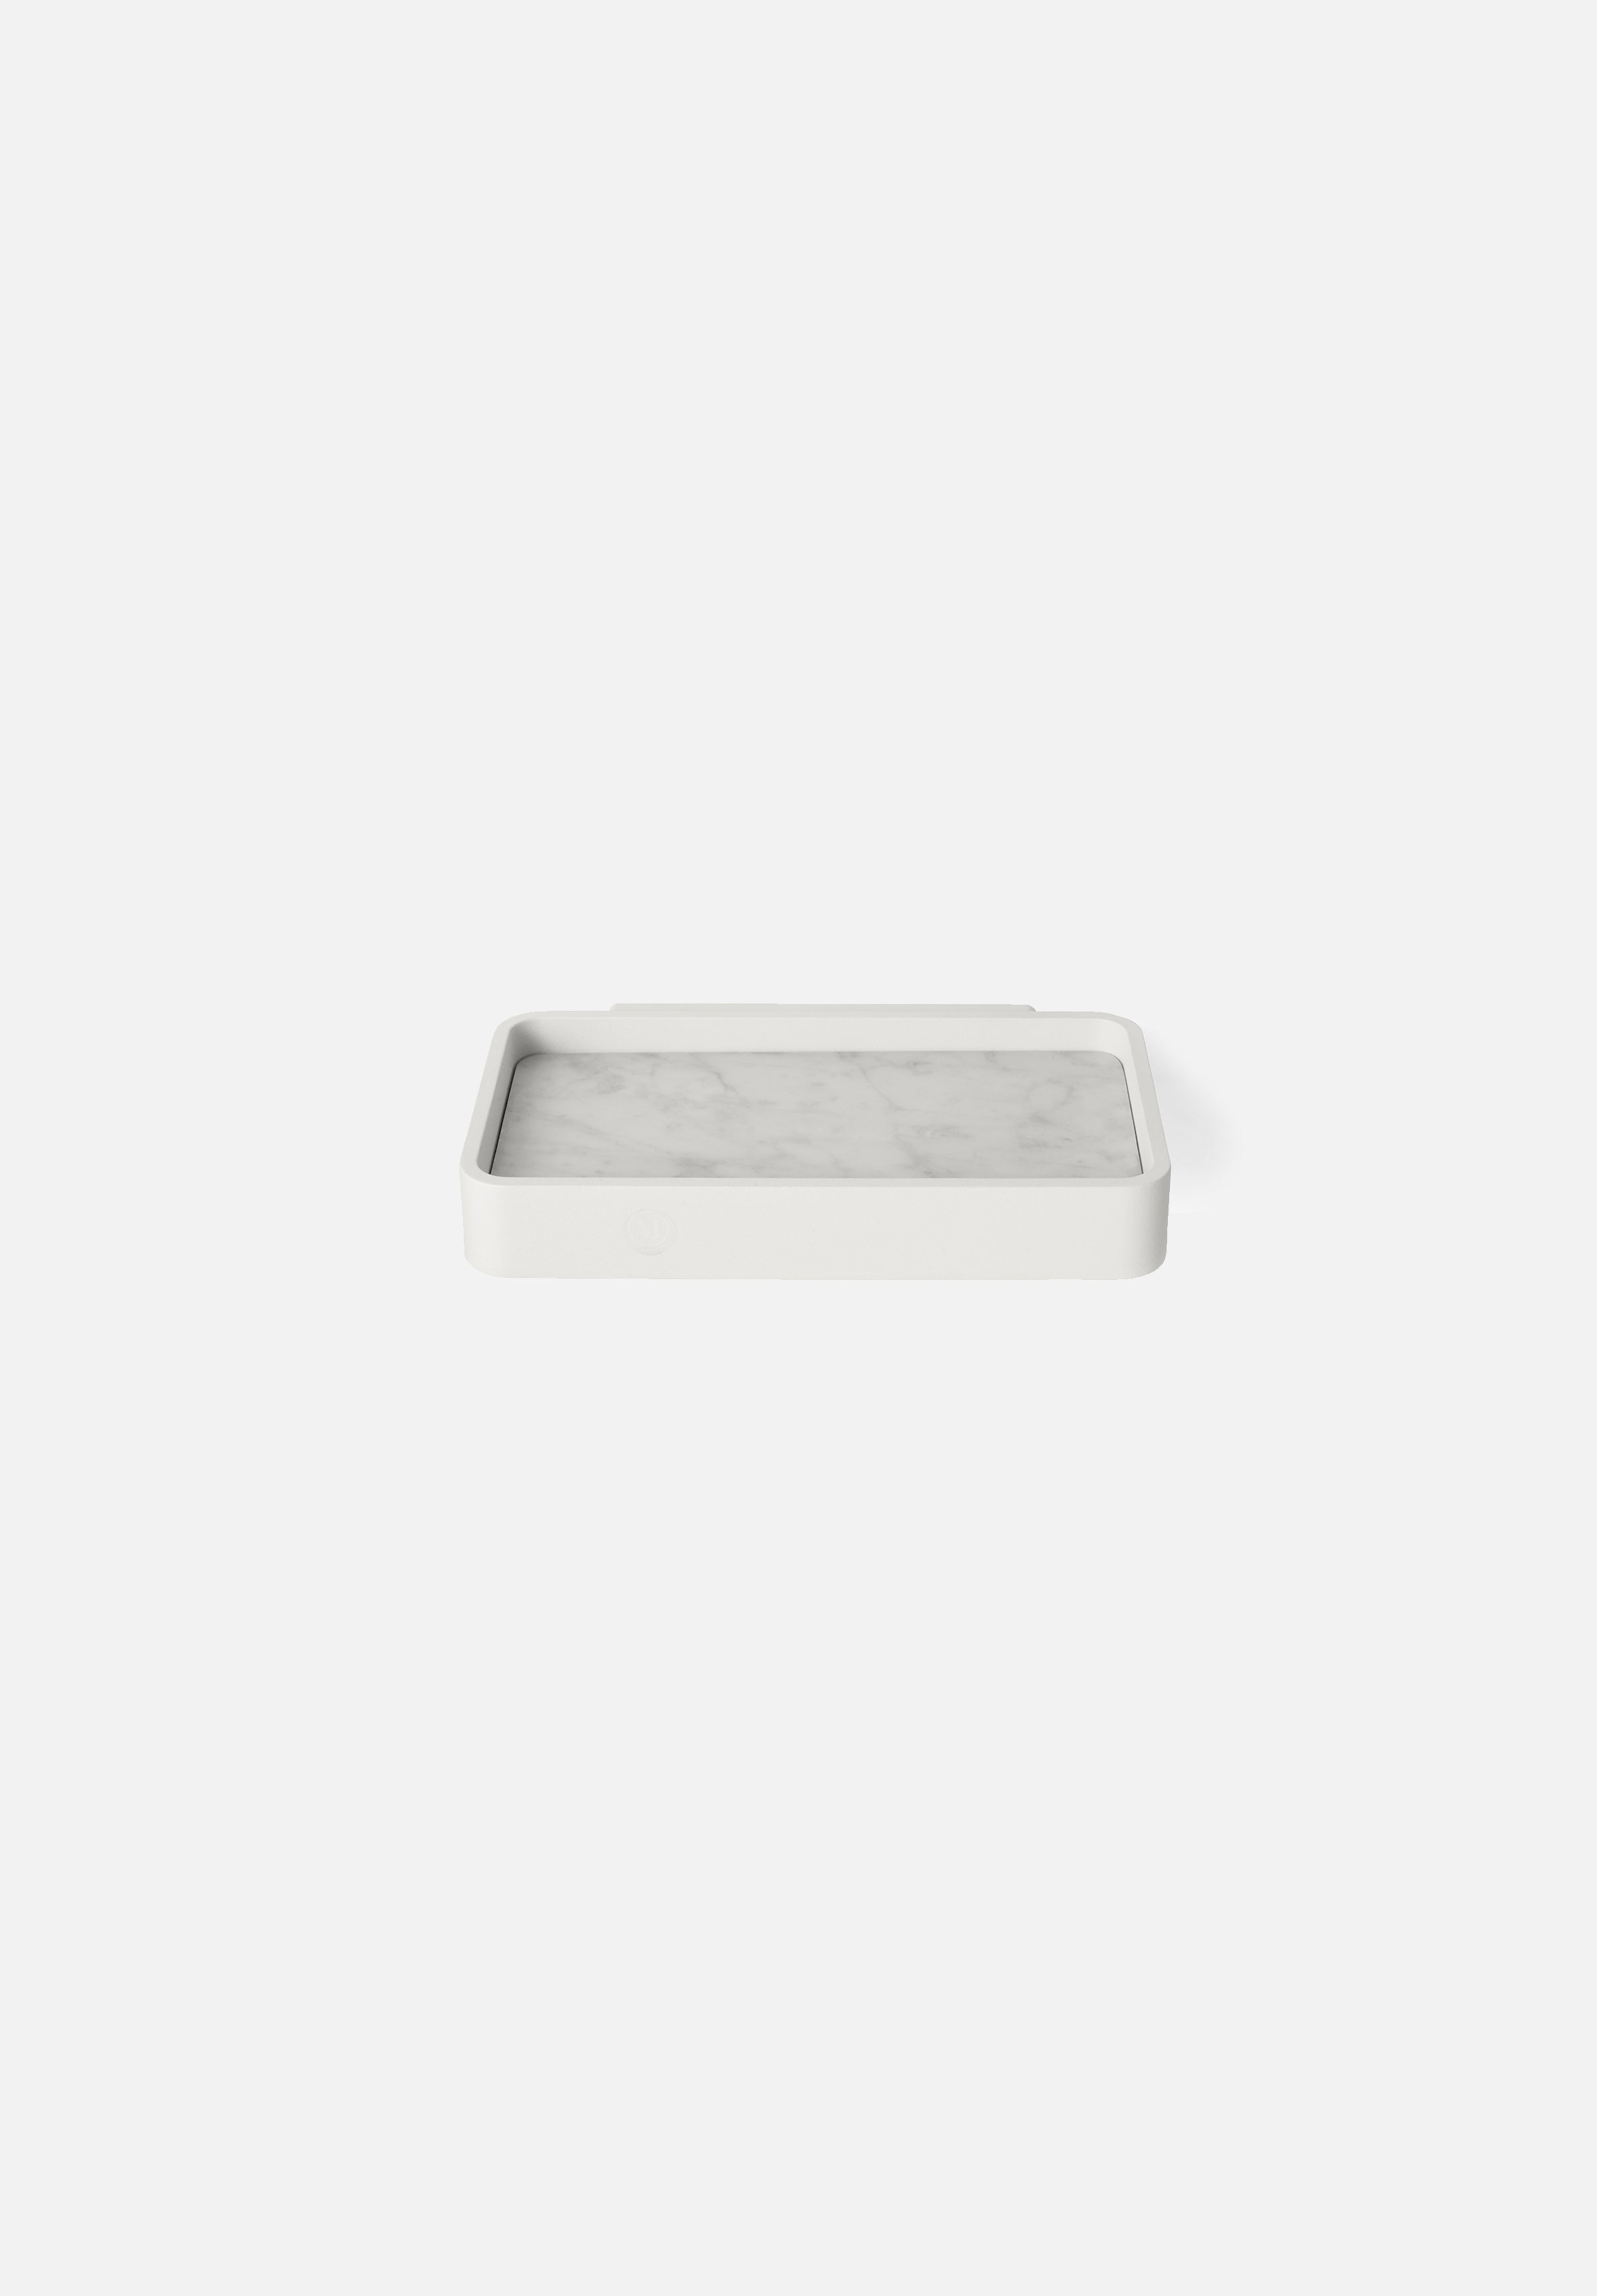 Shower Tray-Norm Architects-Menu-White-Marble Insert-Average